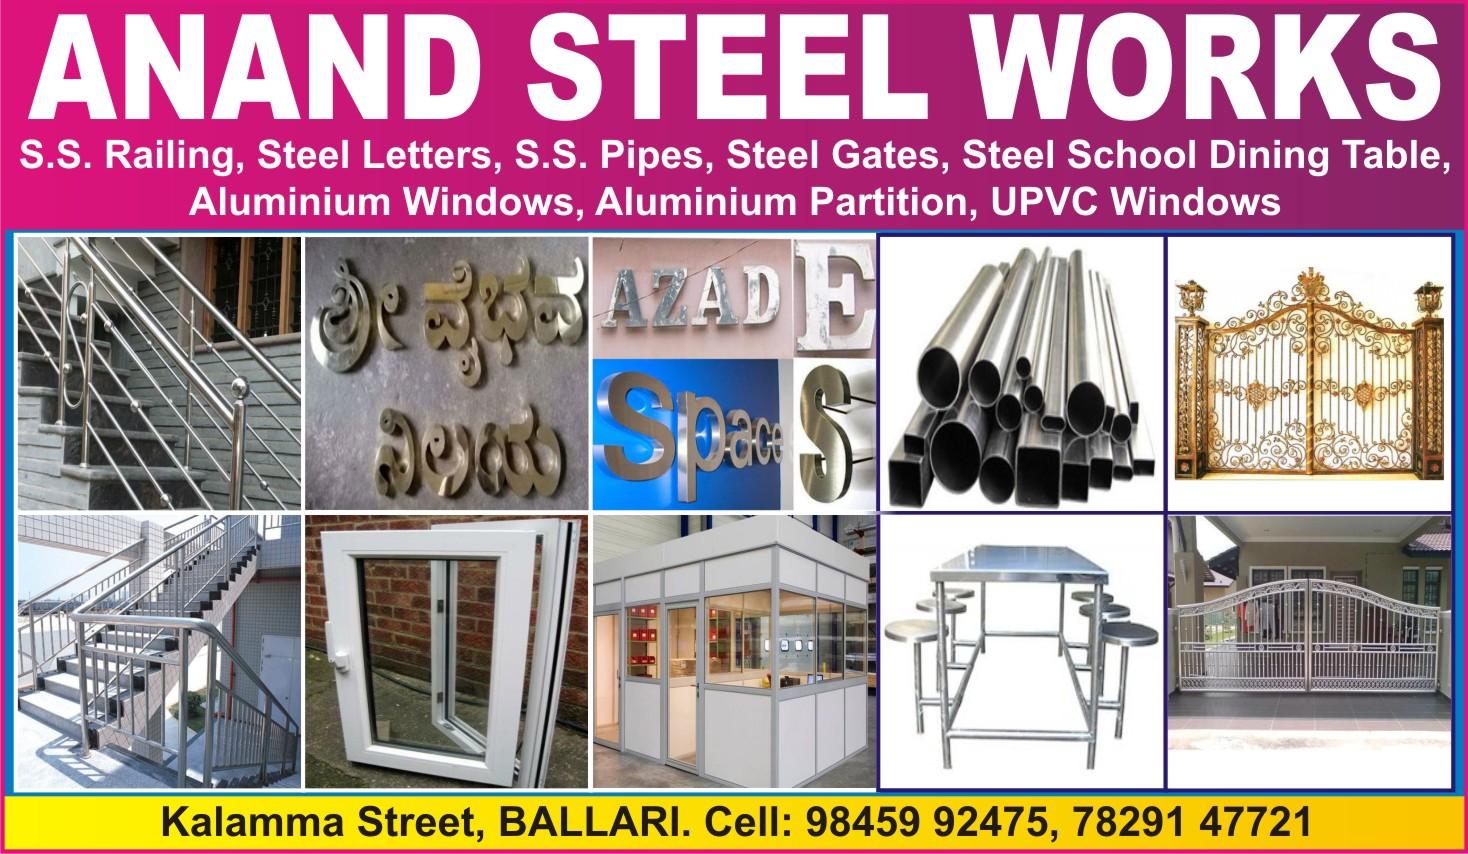 ANAND STEEL WORKS